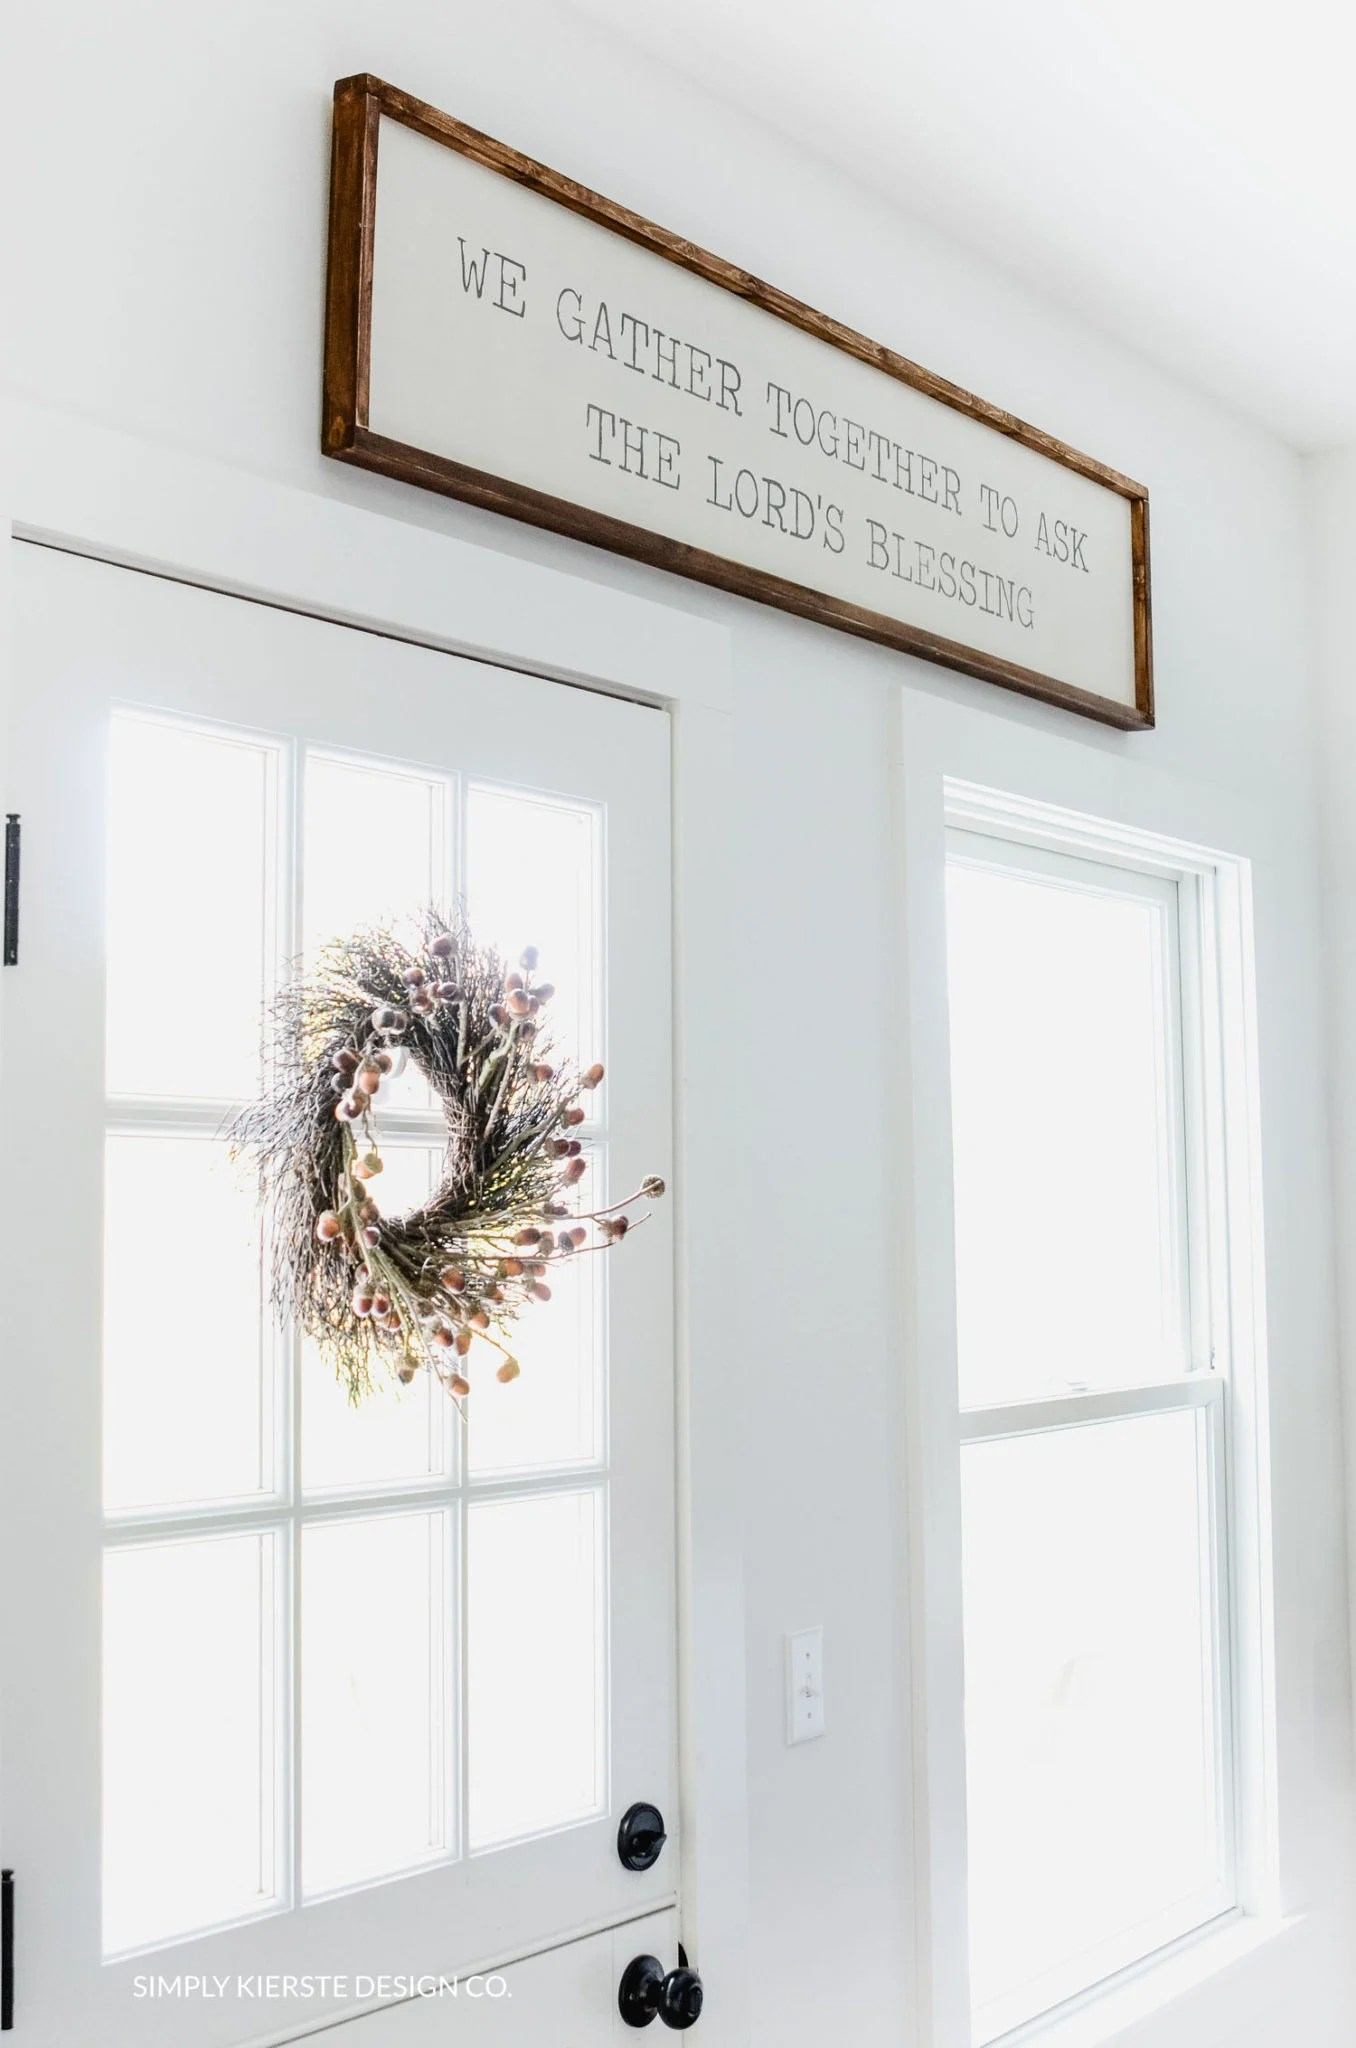 Fall Home Tour | Old Salt Farm| oldsaltfarm.com